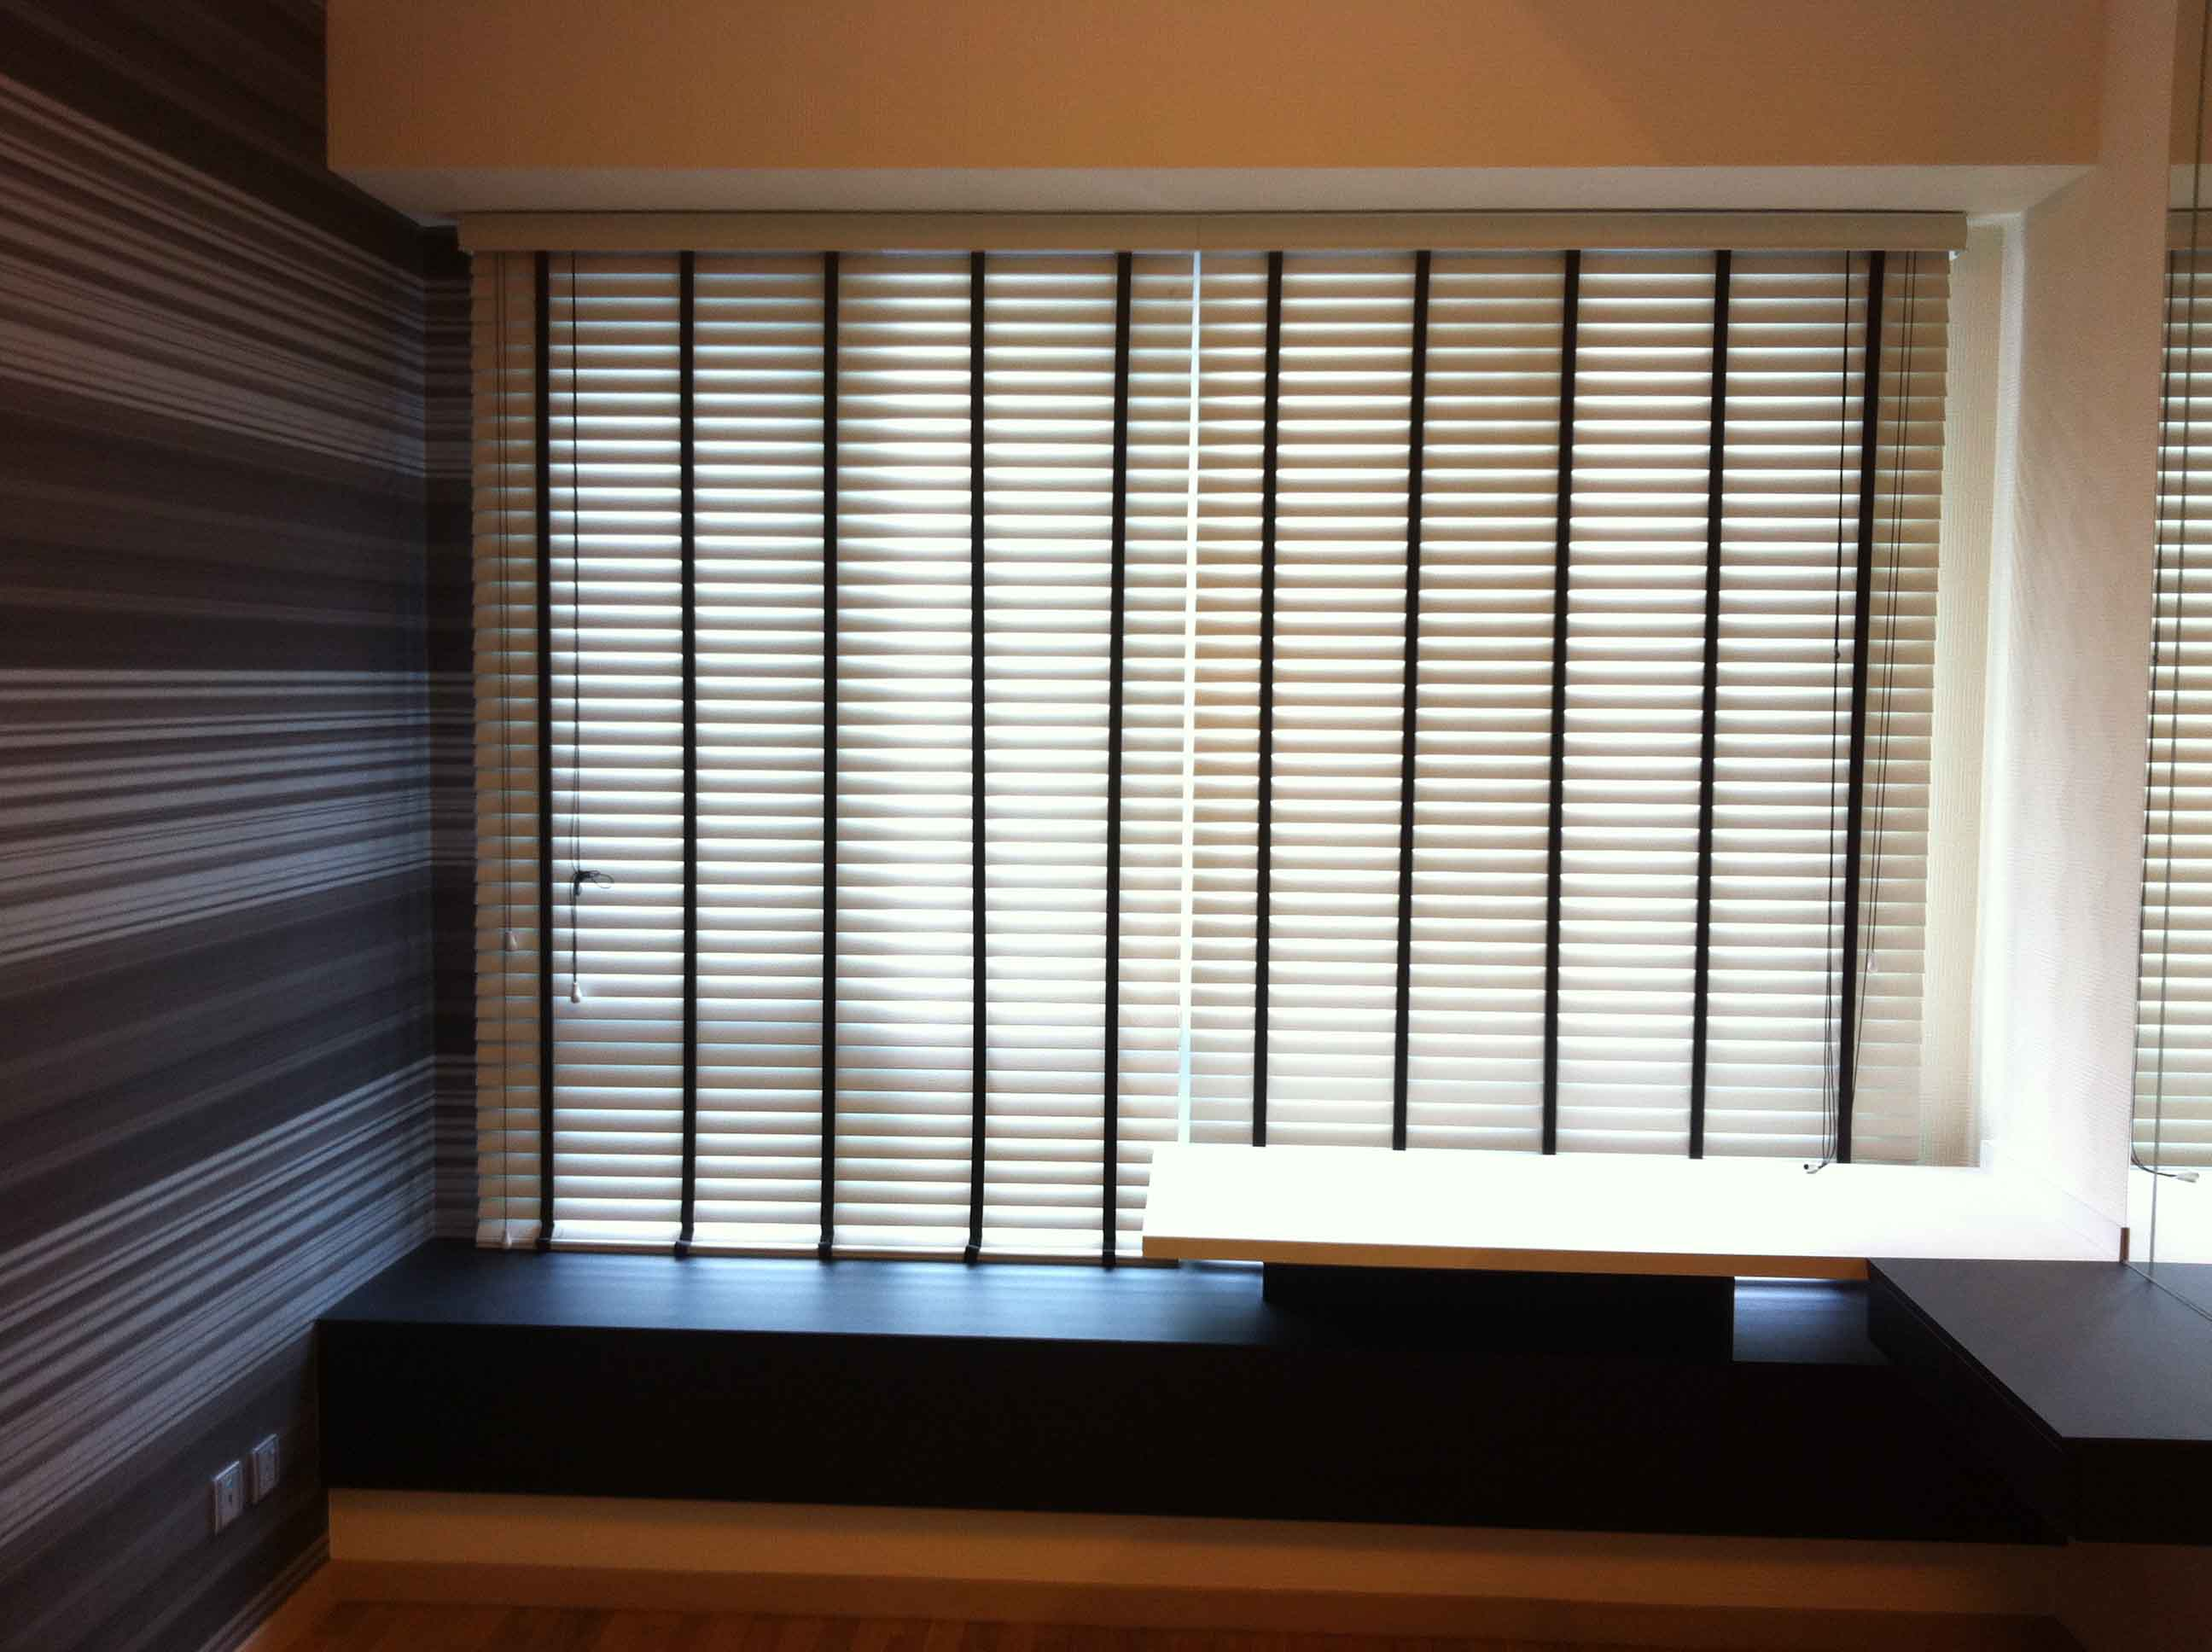 Different Types Of Blinds You Can Use At Home For Windows